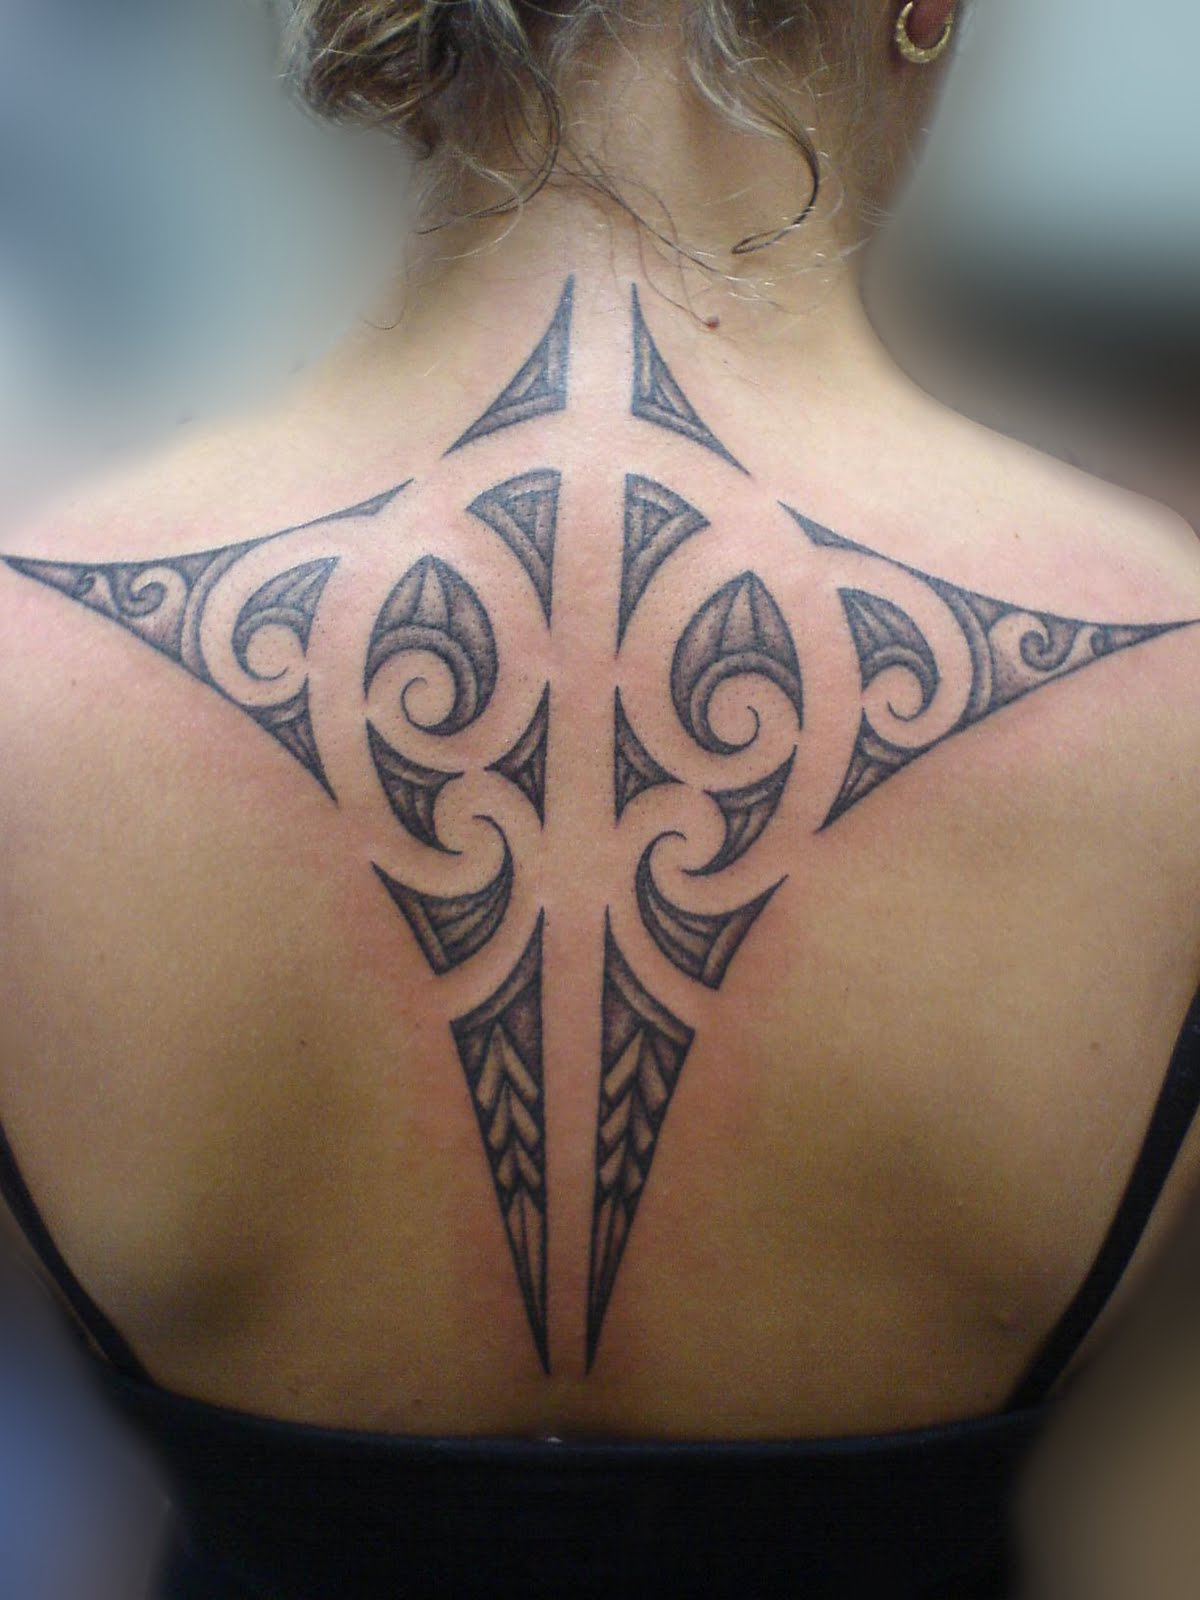 Body art world tattoos maori tattoo art and traditional for Women s tribal tattoos designs